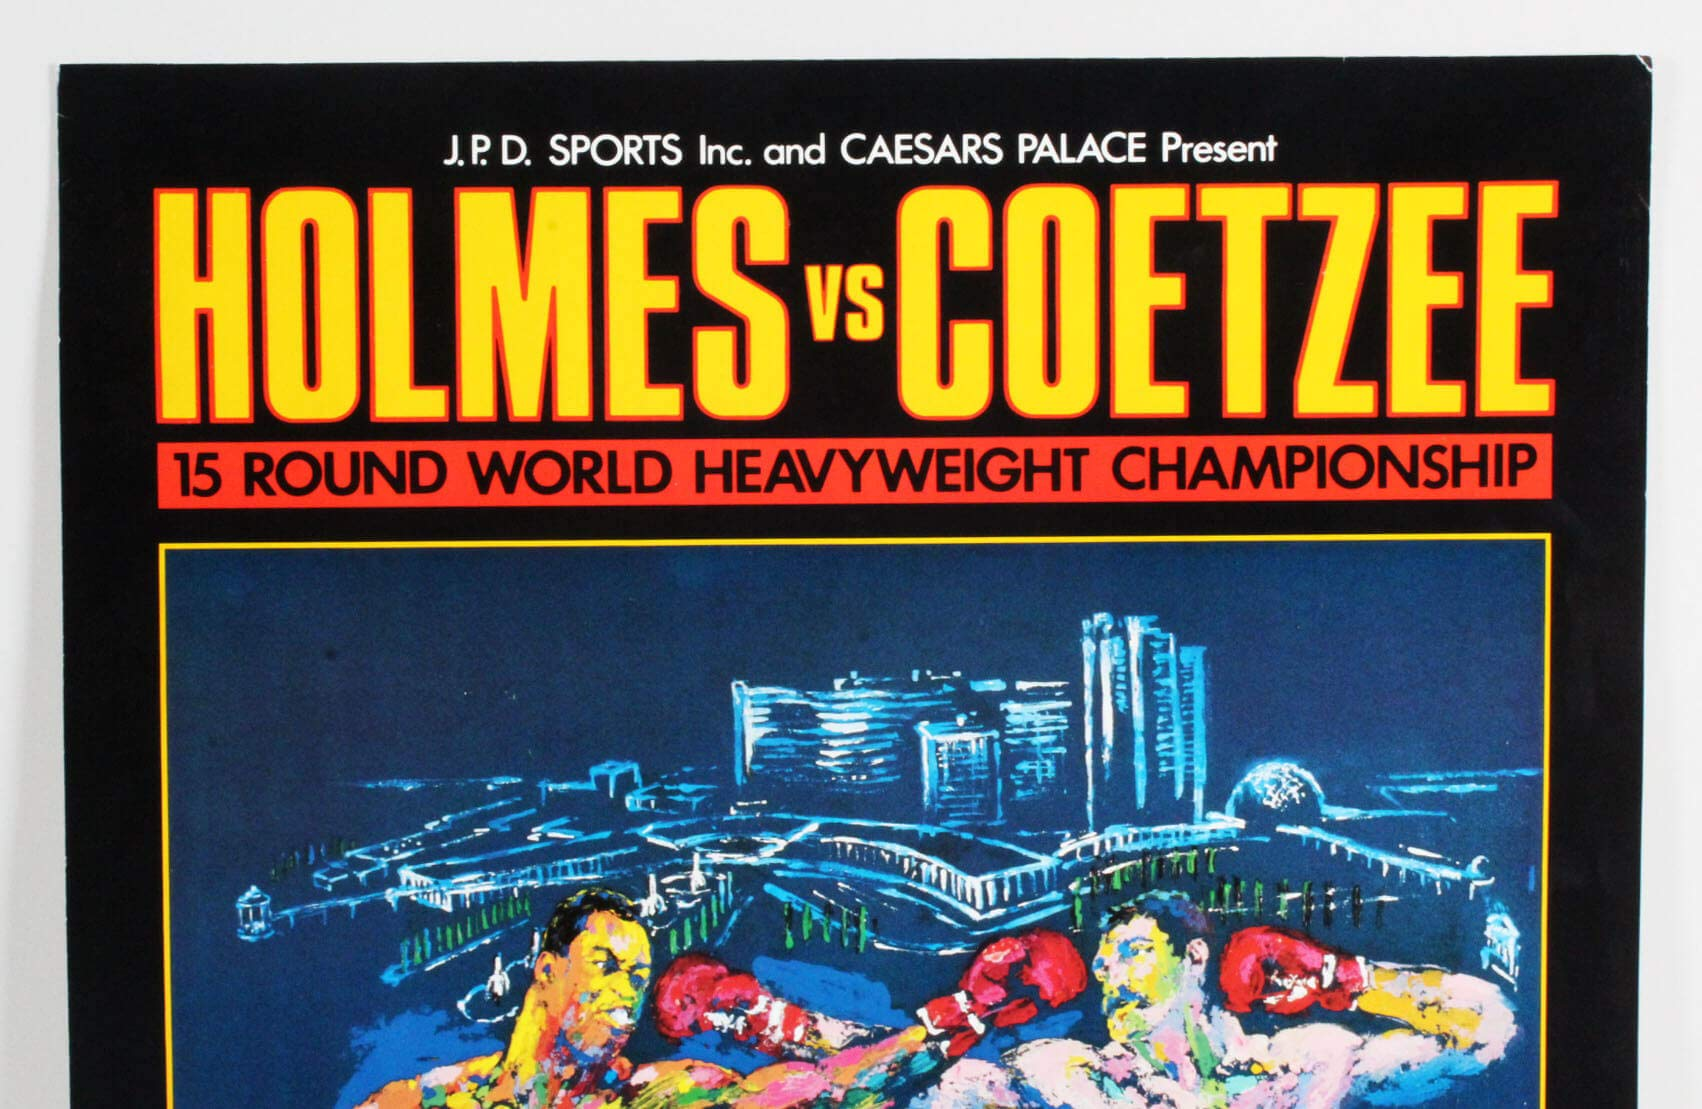 Larry Holmes Vs. Gerrie Coetzee Fight Poster